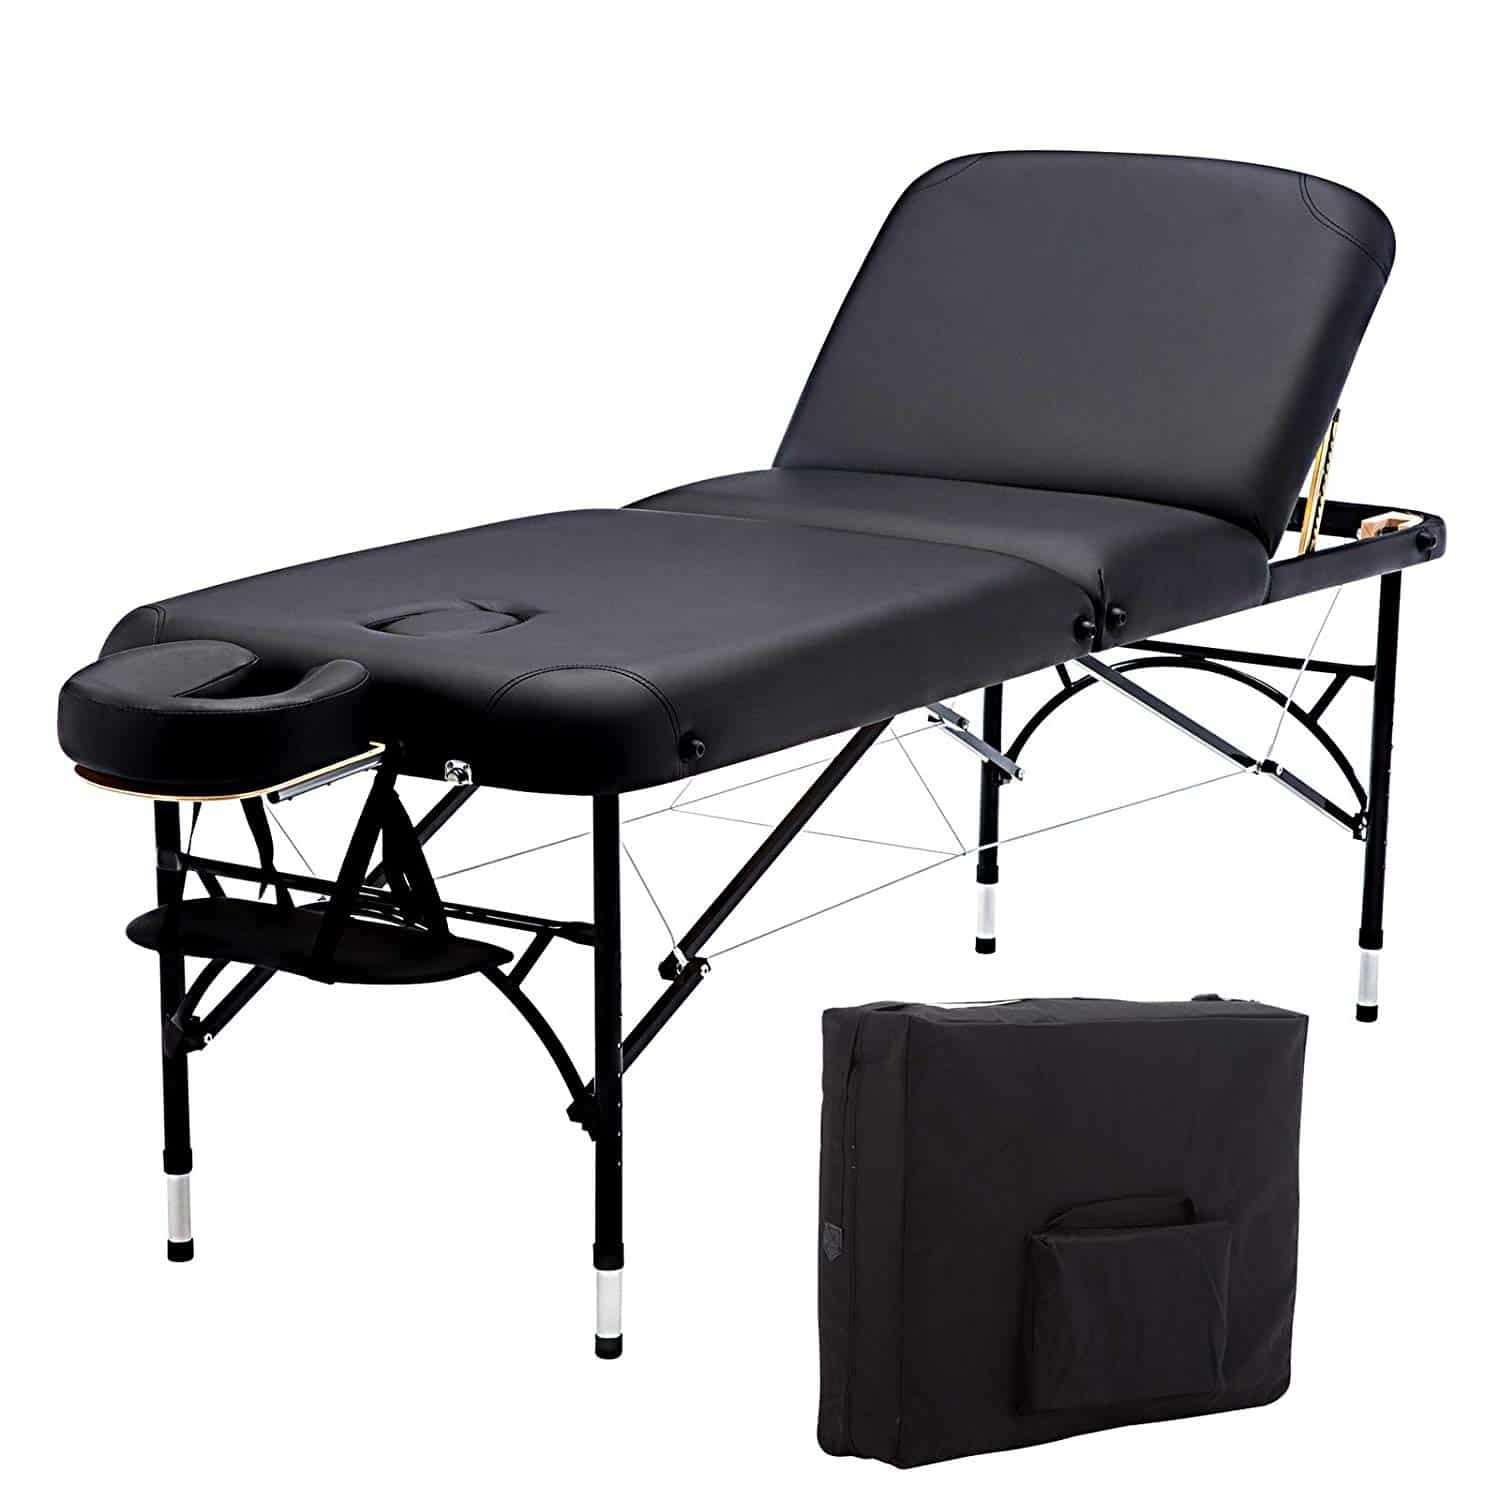 11.Artechworks 73 Long 28 Wide Professional 3 Folding Portable Massage Table Facial Salon Spa Tattoo Bed With Aluminium Leg